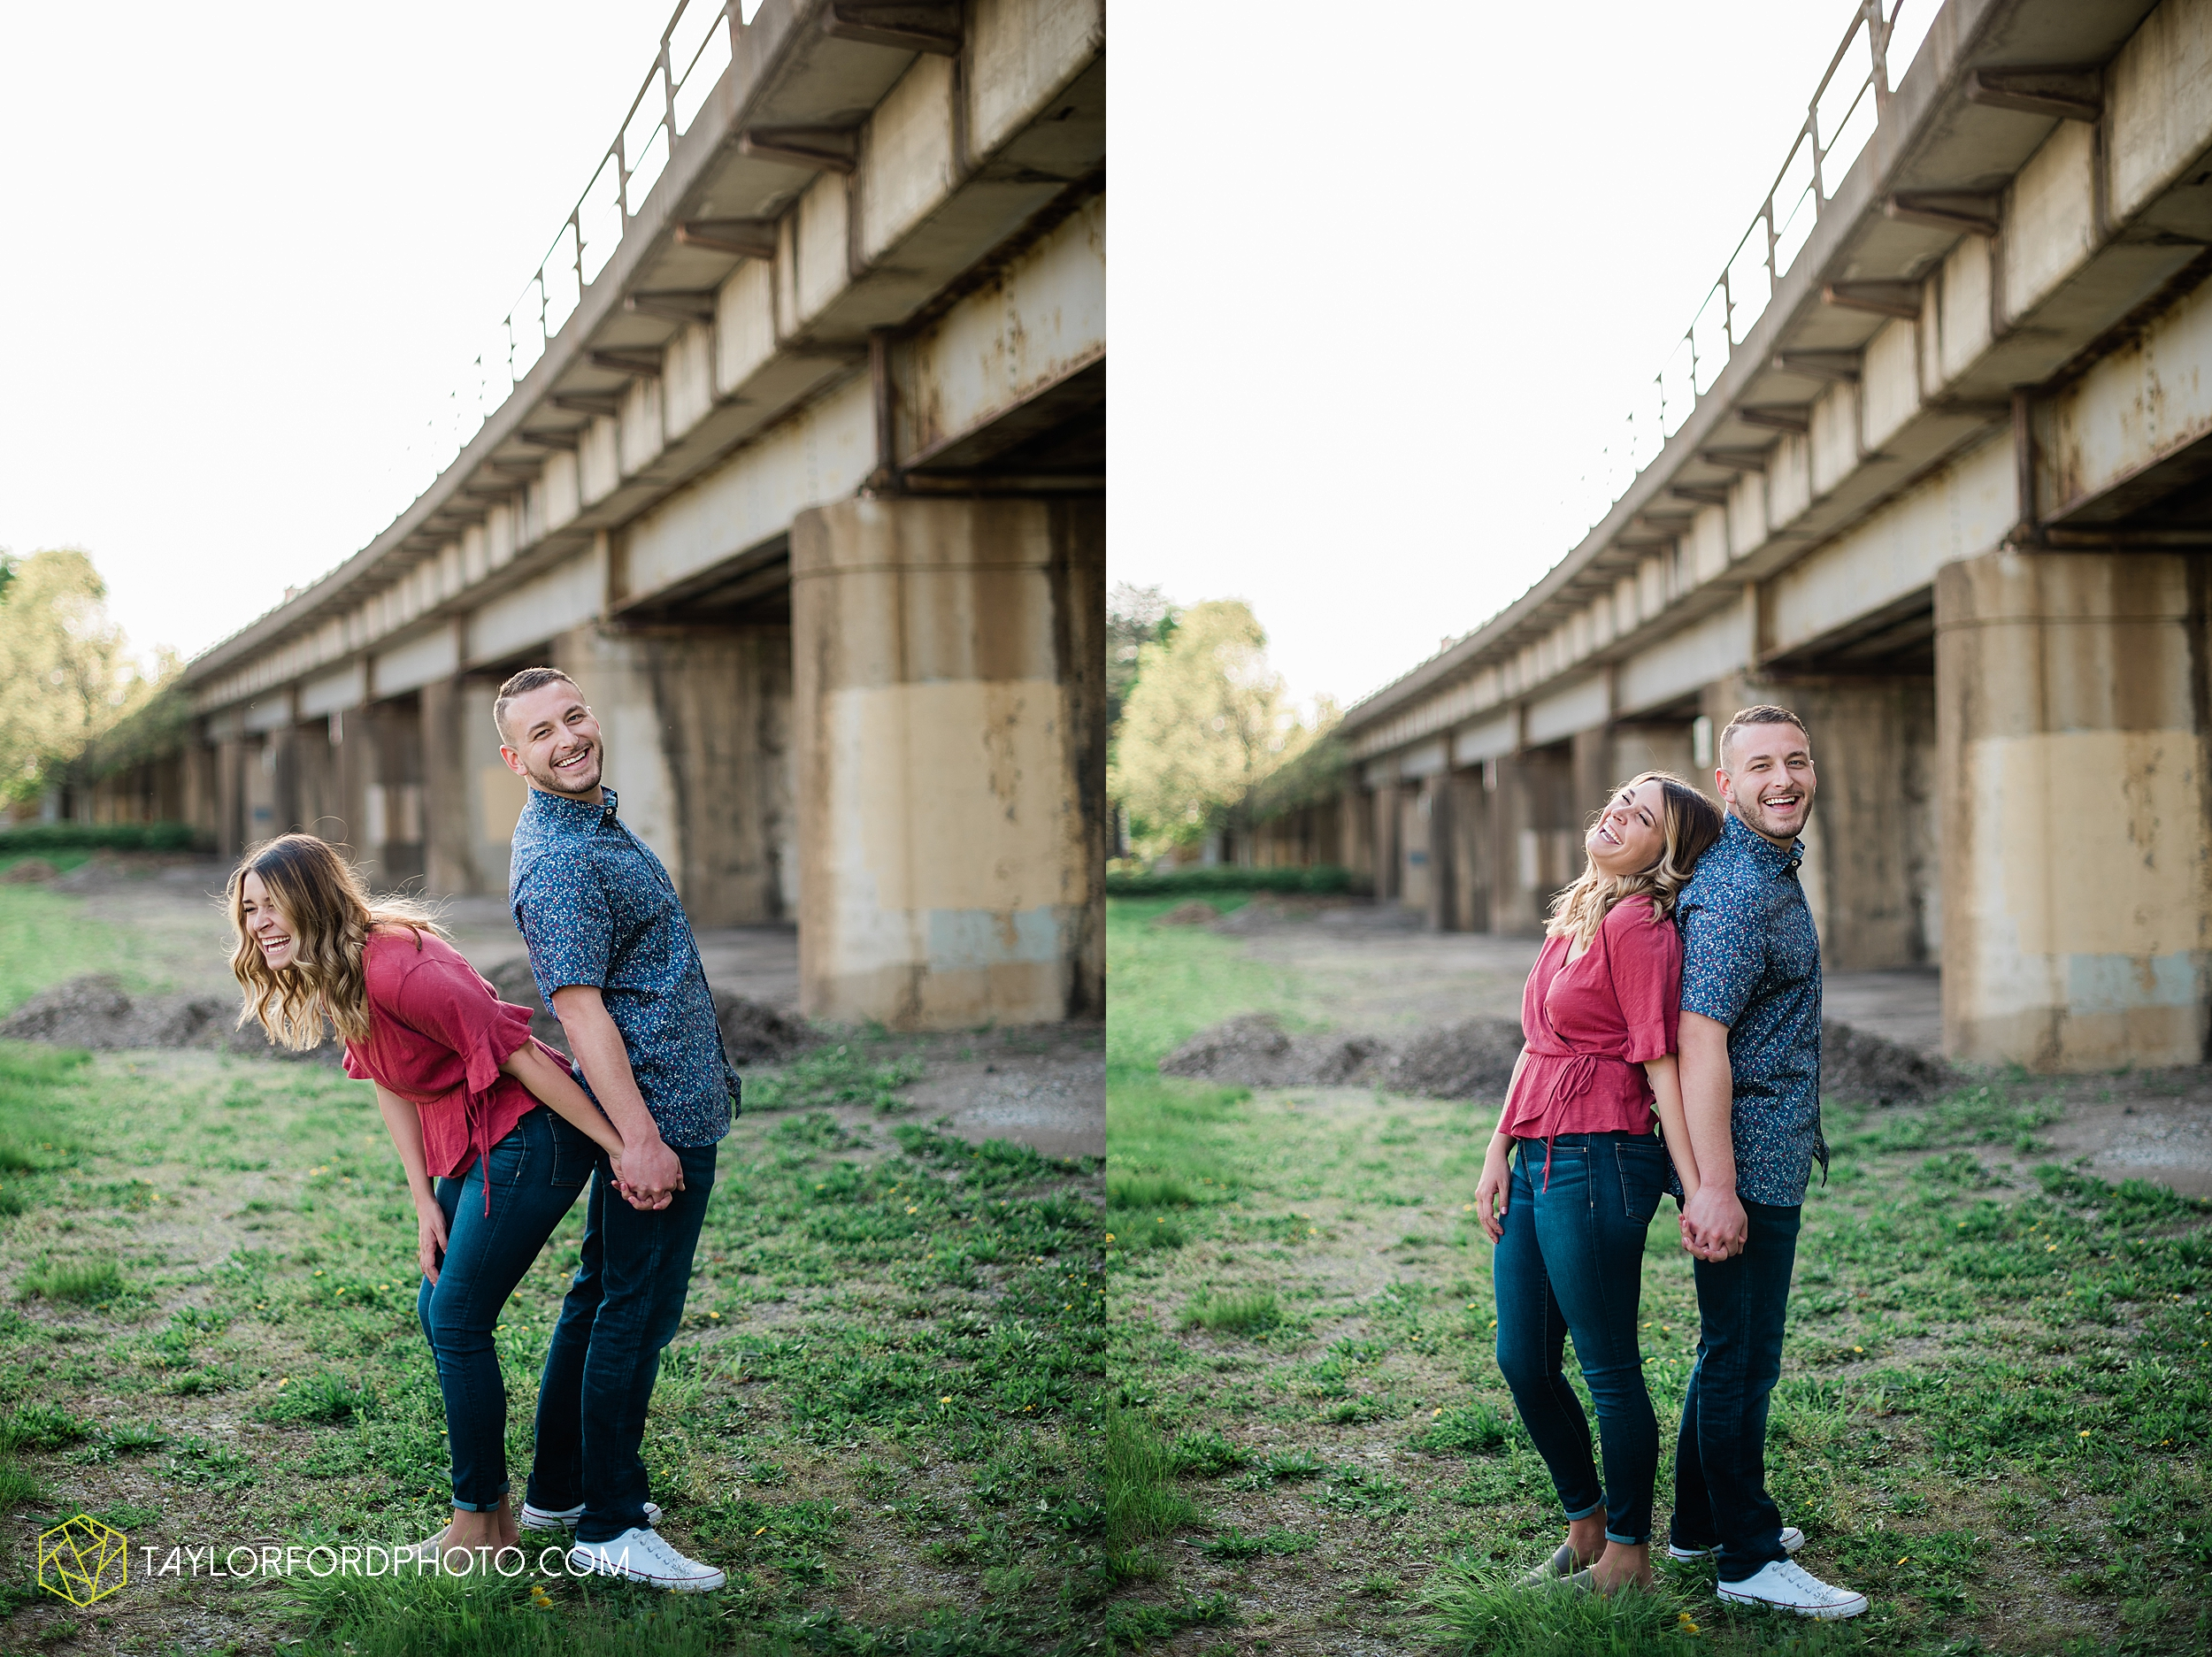 aly-taylor-downtown-fort-wayne-indiana-spring-engagement-photographer-photography-taylor-ford-hirschy-photographer_2588.jpg